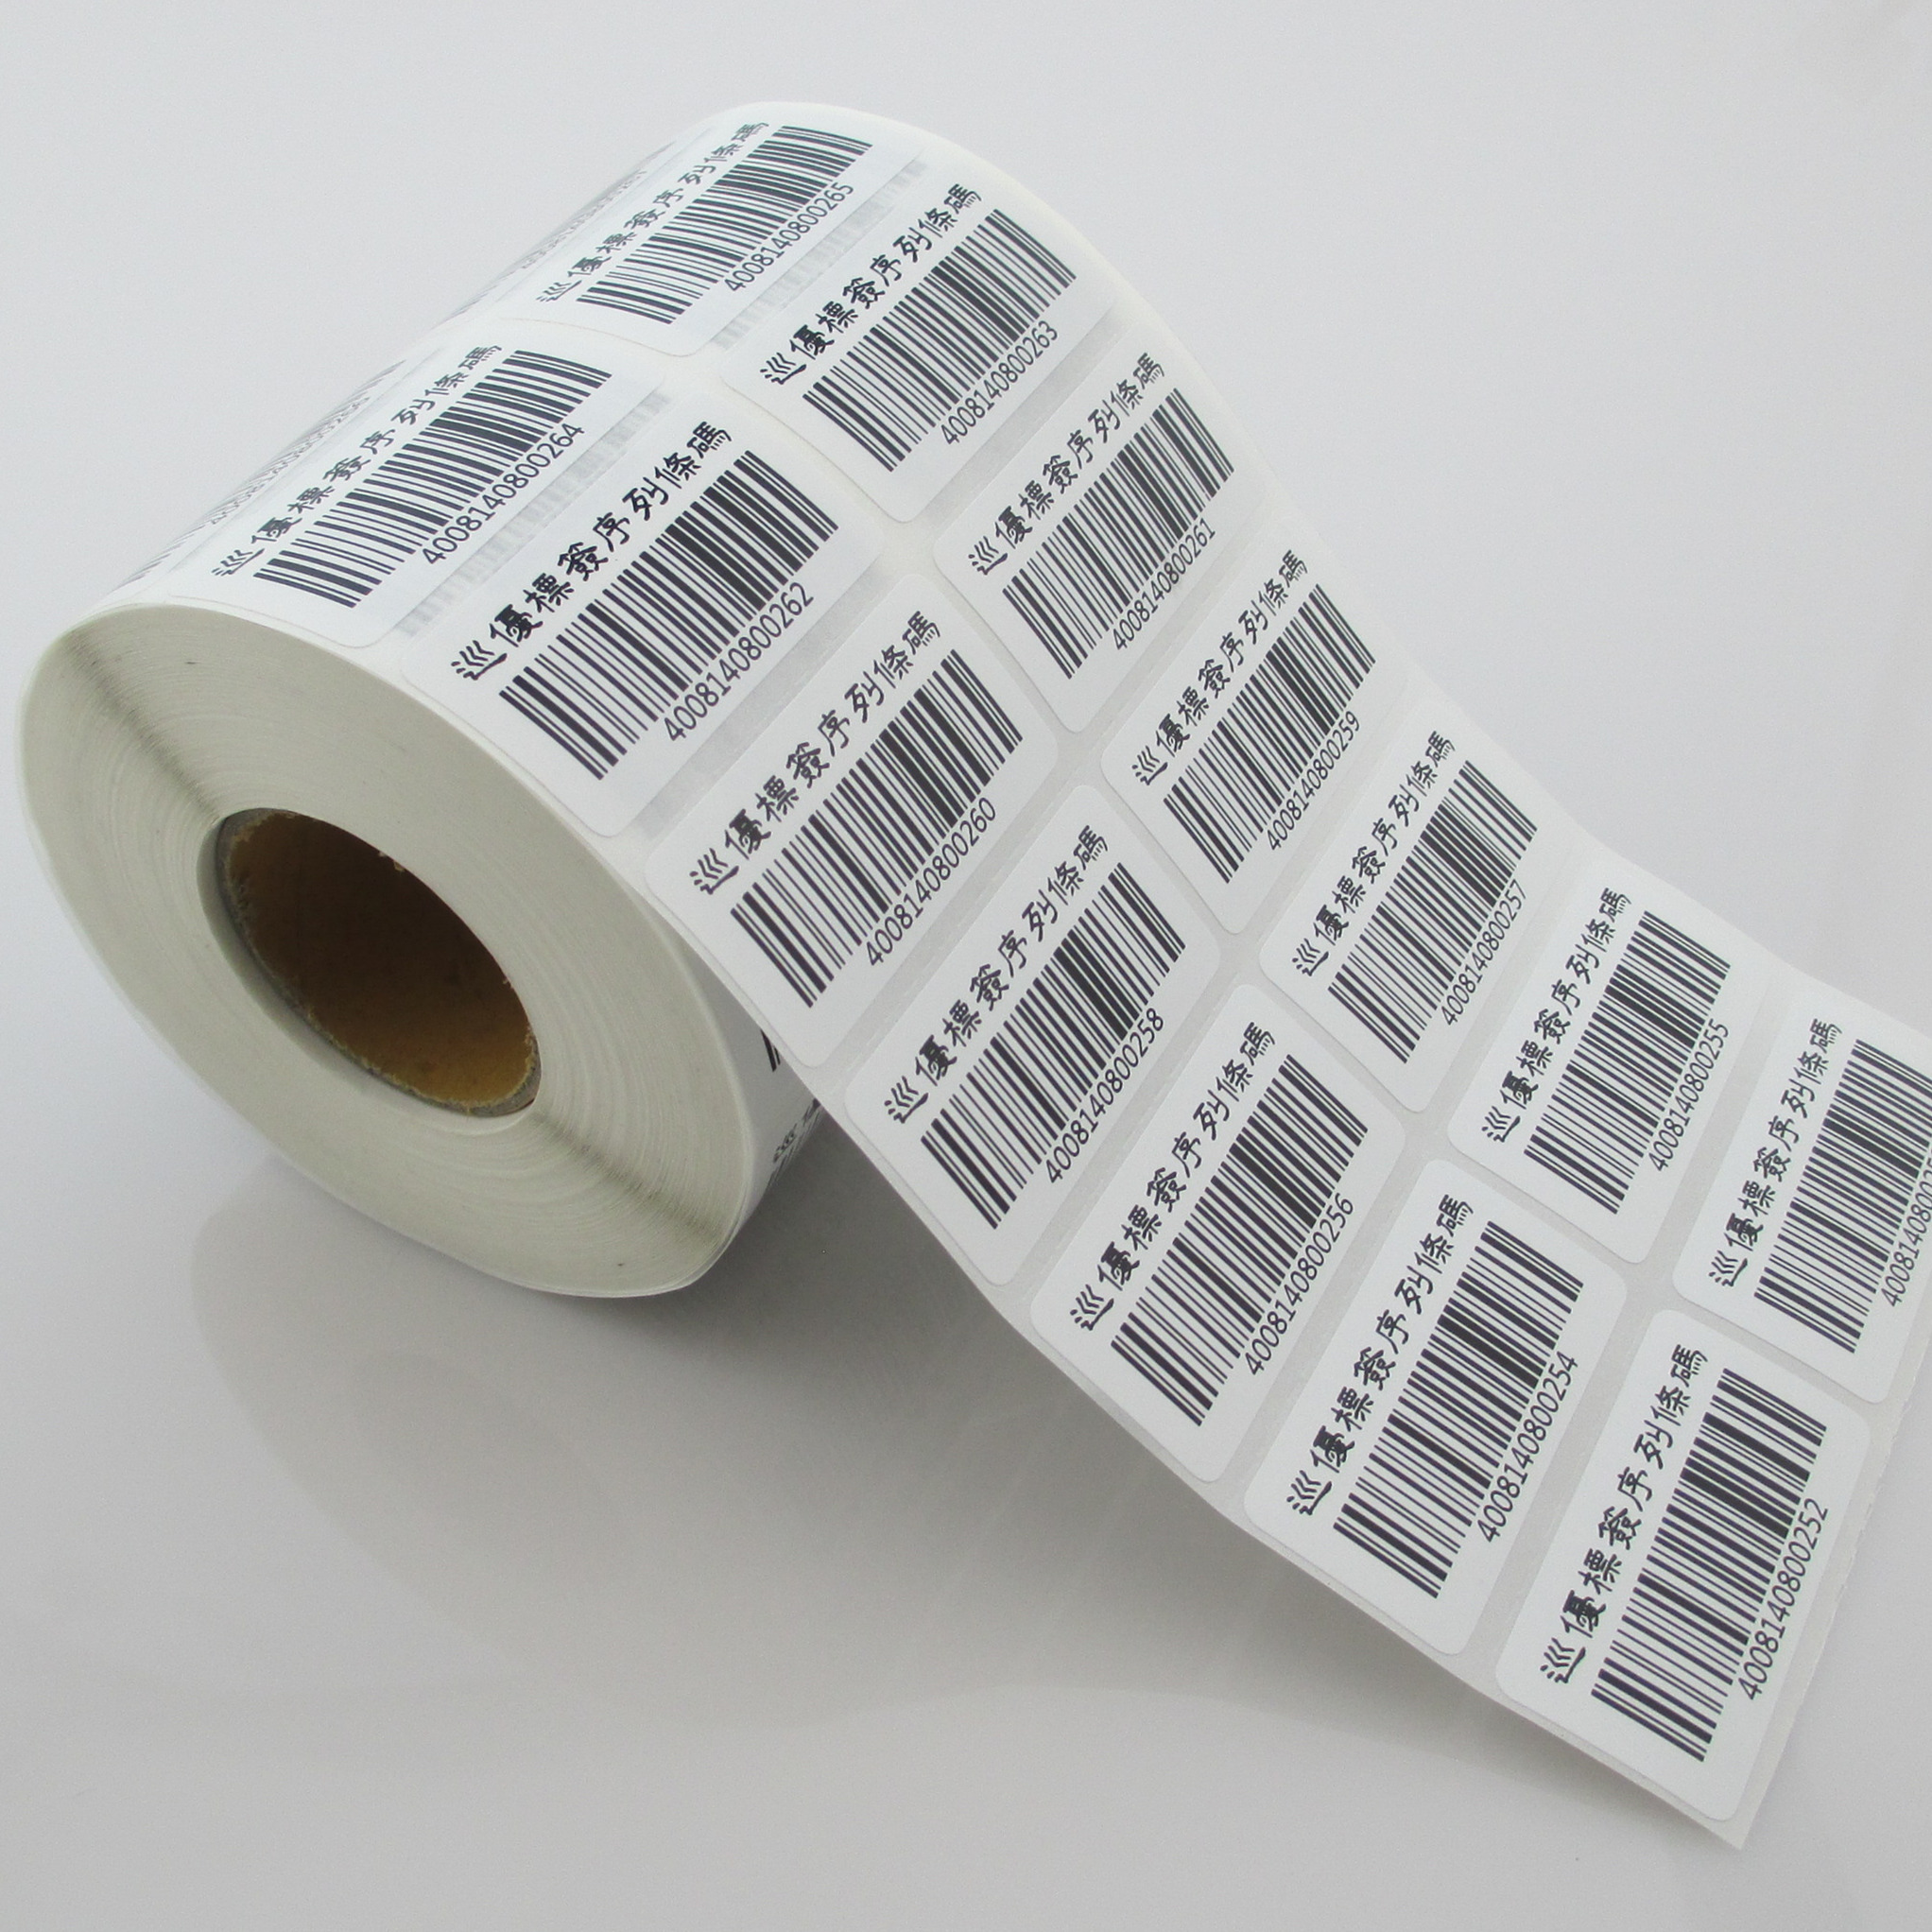 Wechat qr code stickers custom stickers barcode paper printing barcode labels jewelry label paper production